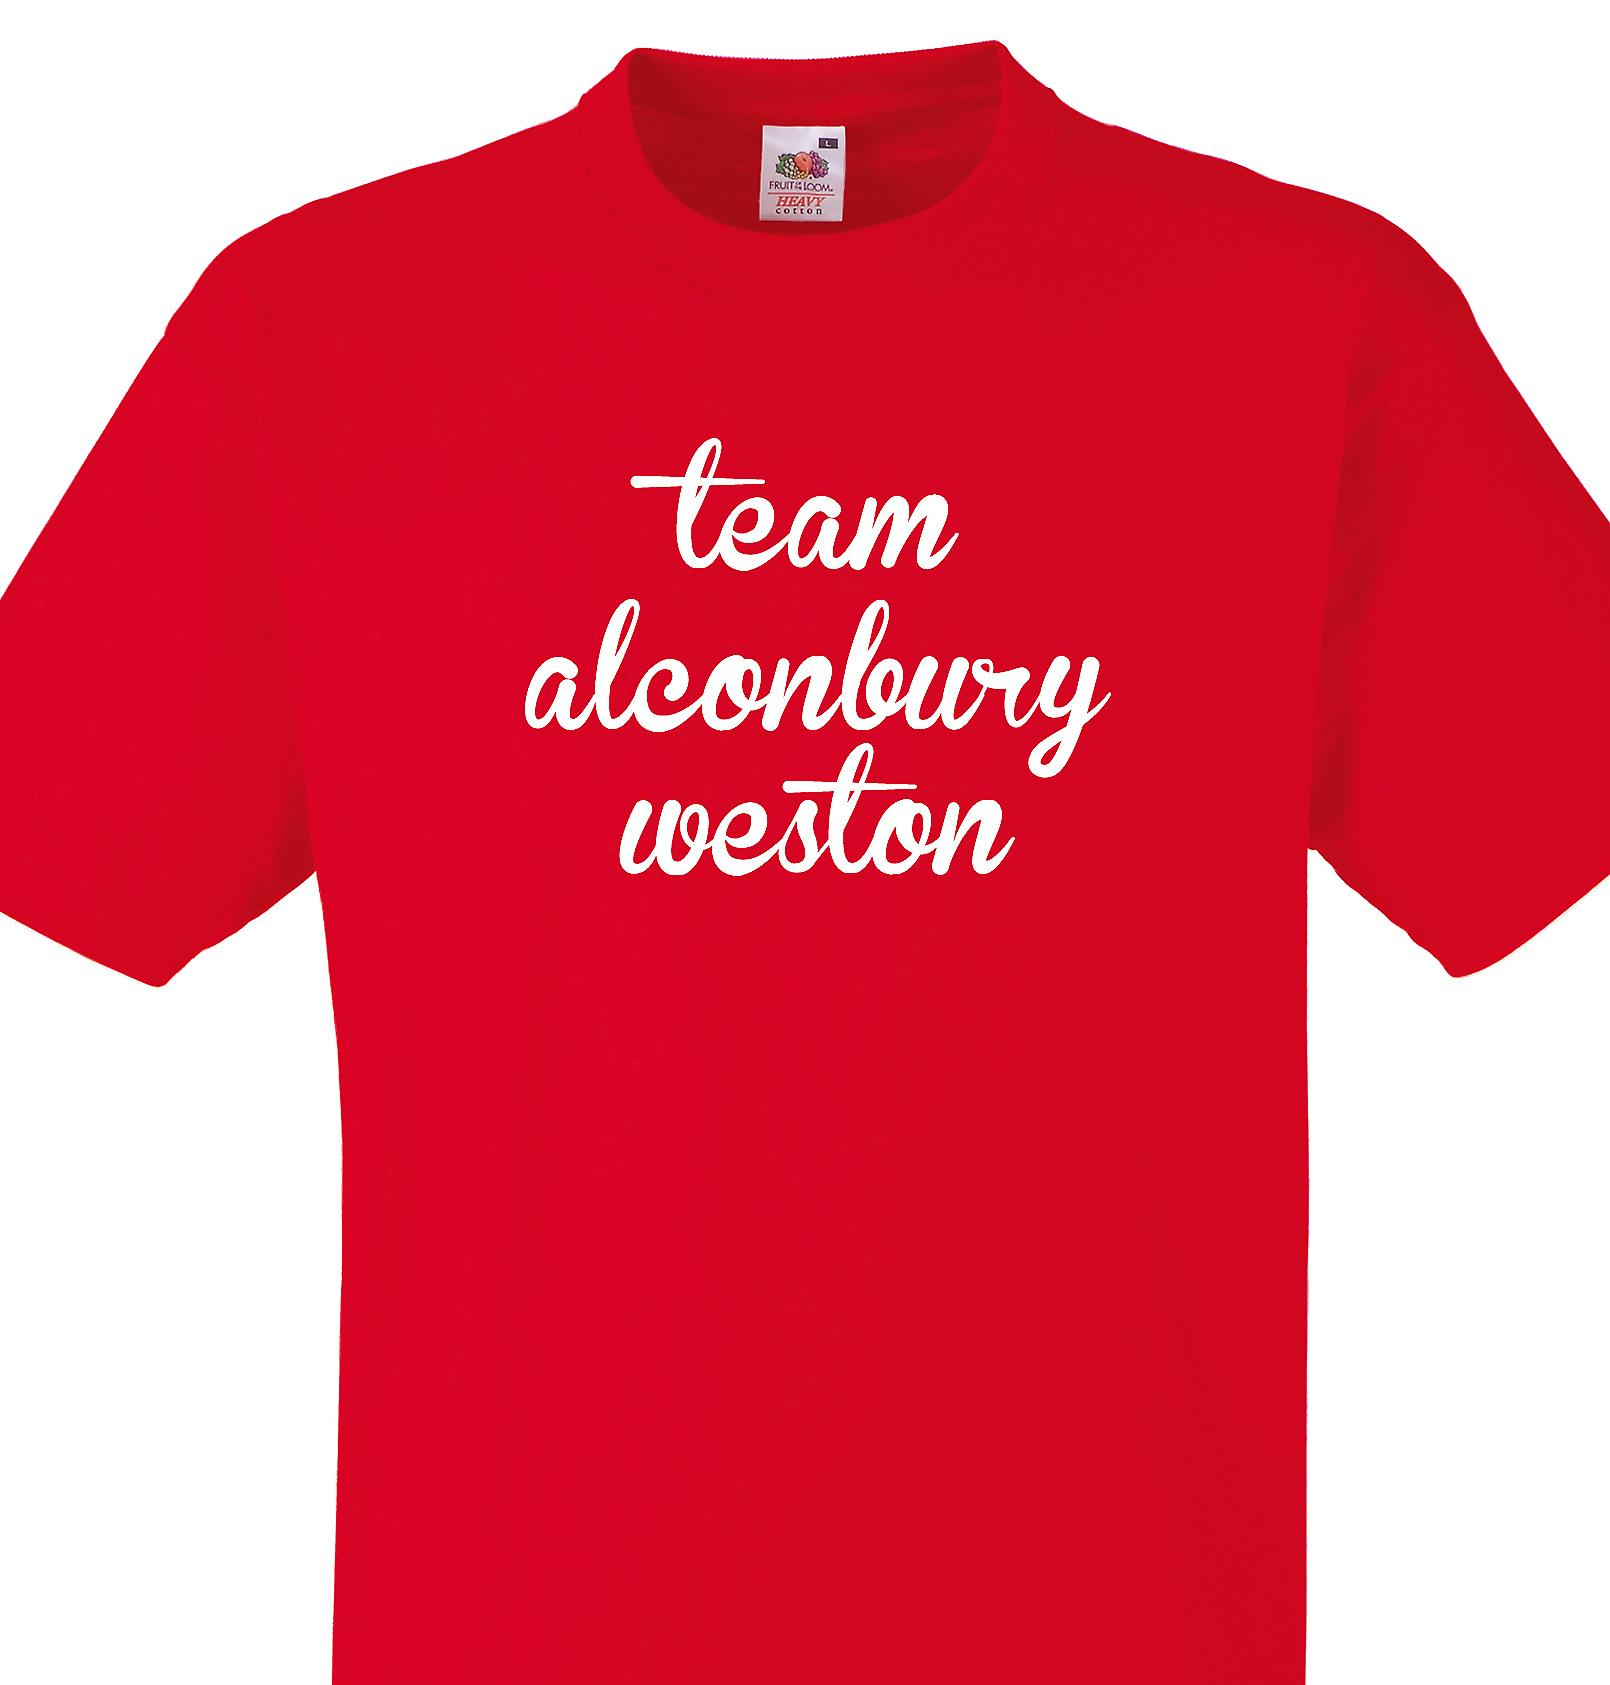 Team Alconbury weston Red T shirt